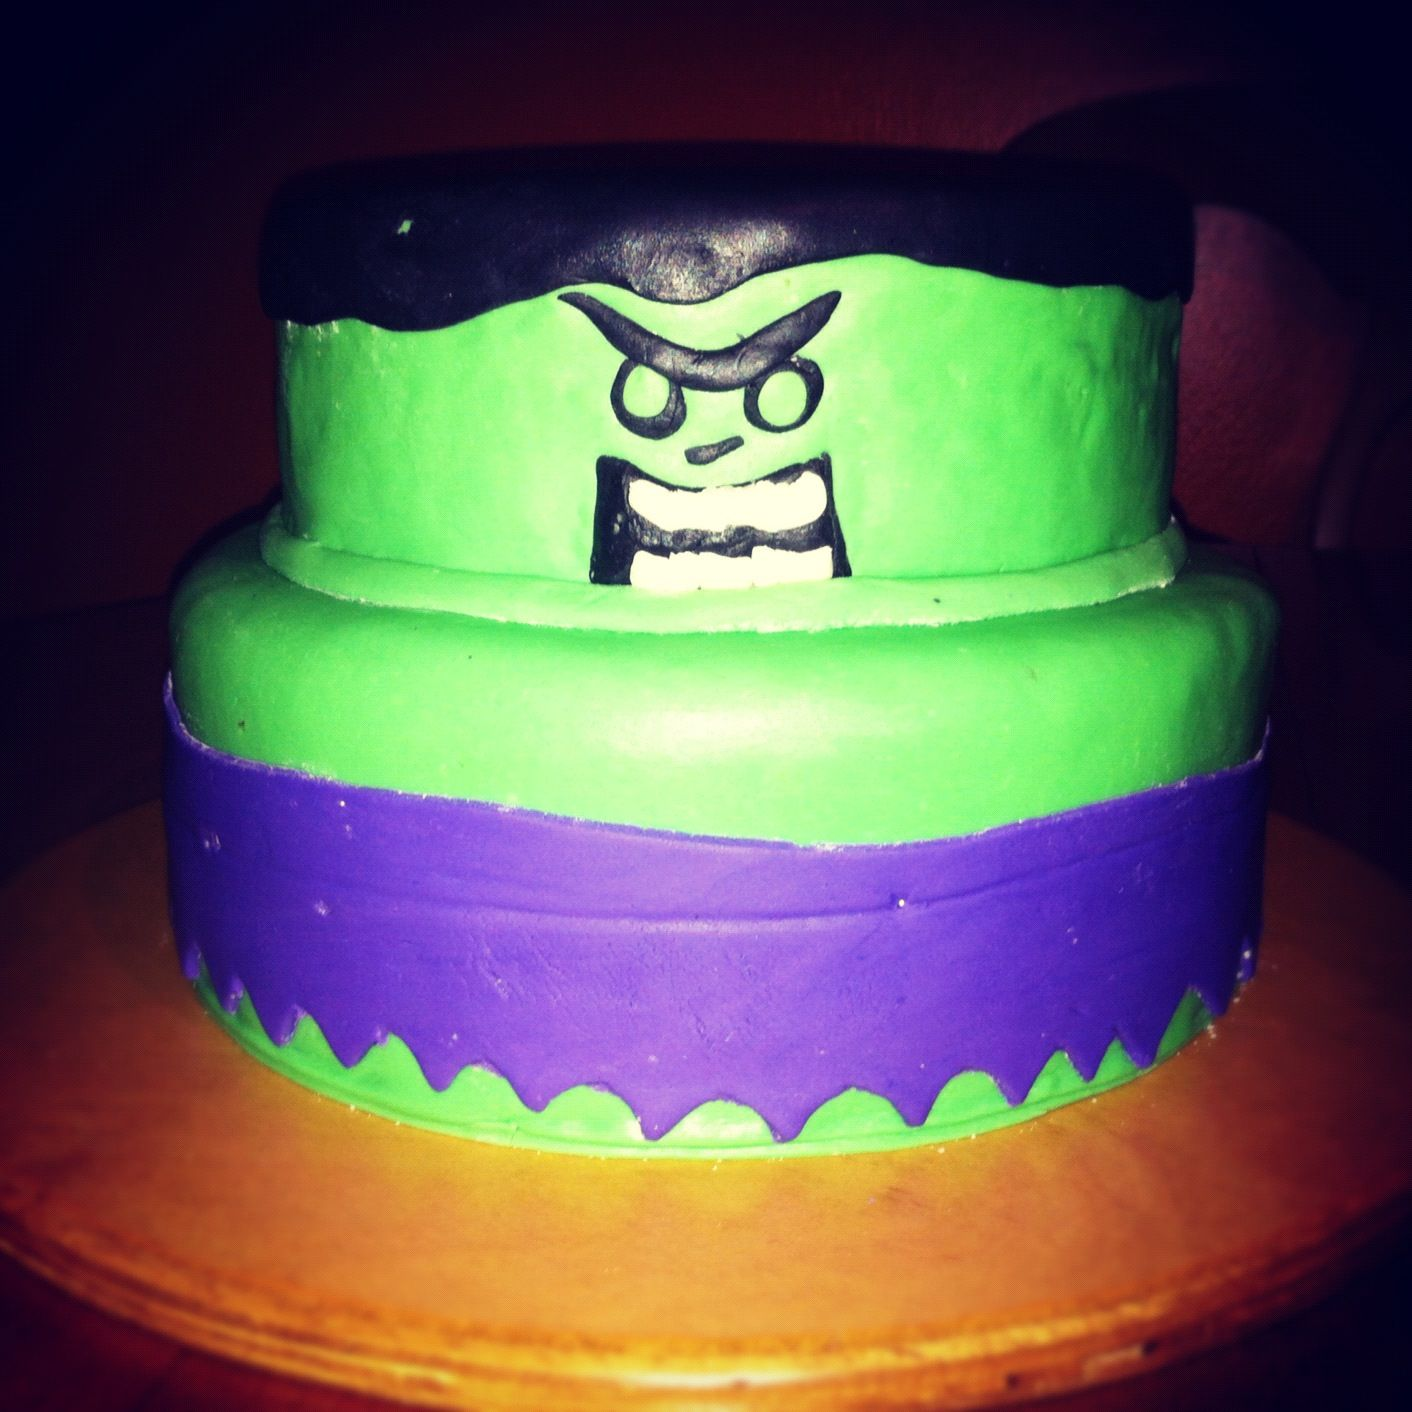 The Incredible Hulk Birthday Cakes By Alynda Cone Mellwee My Style